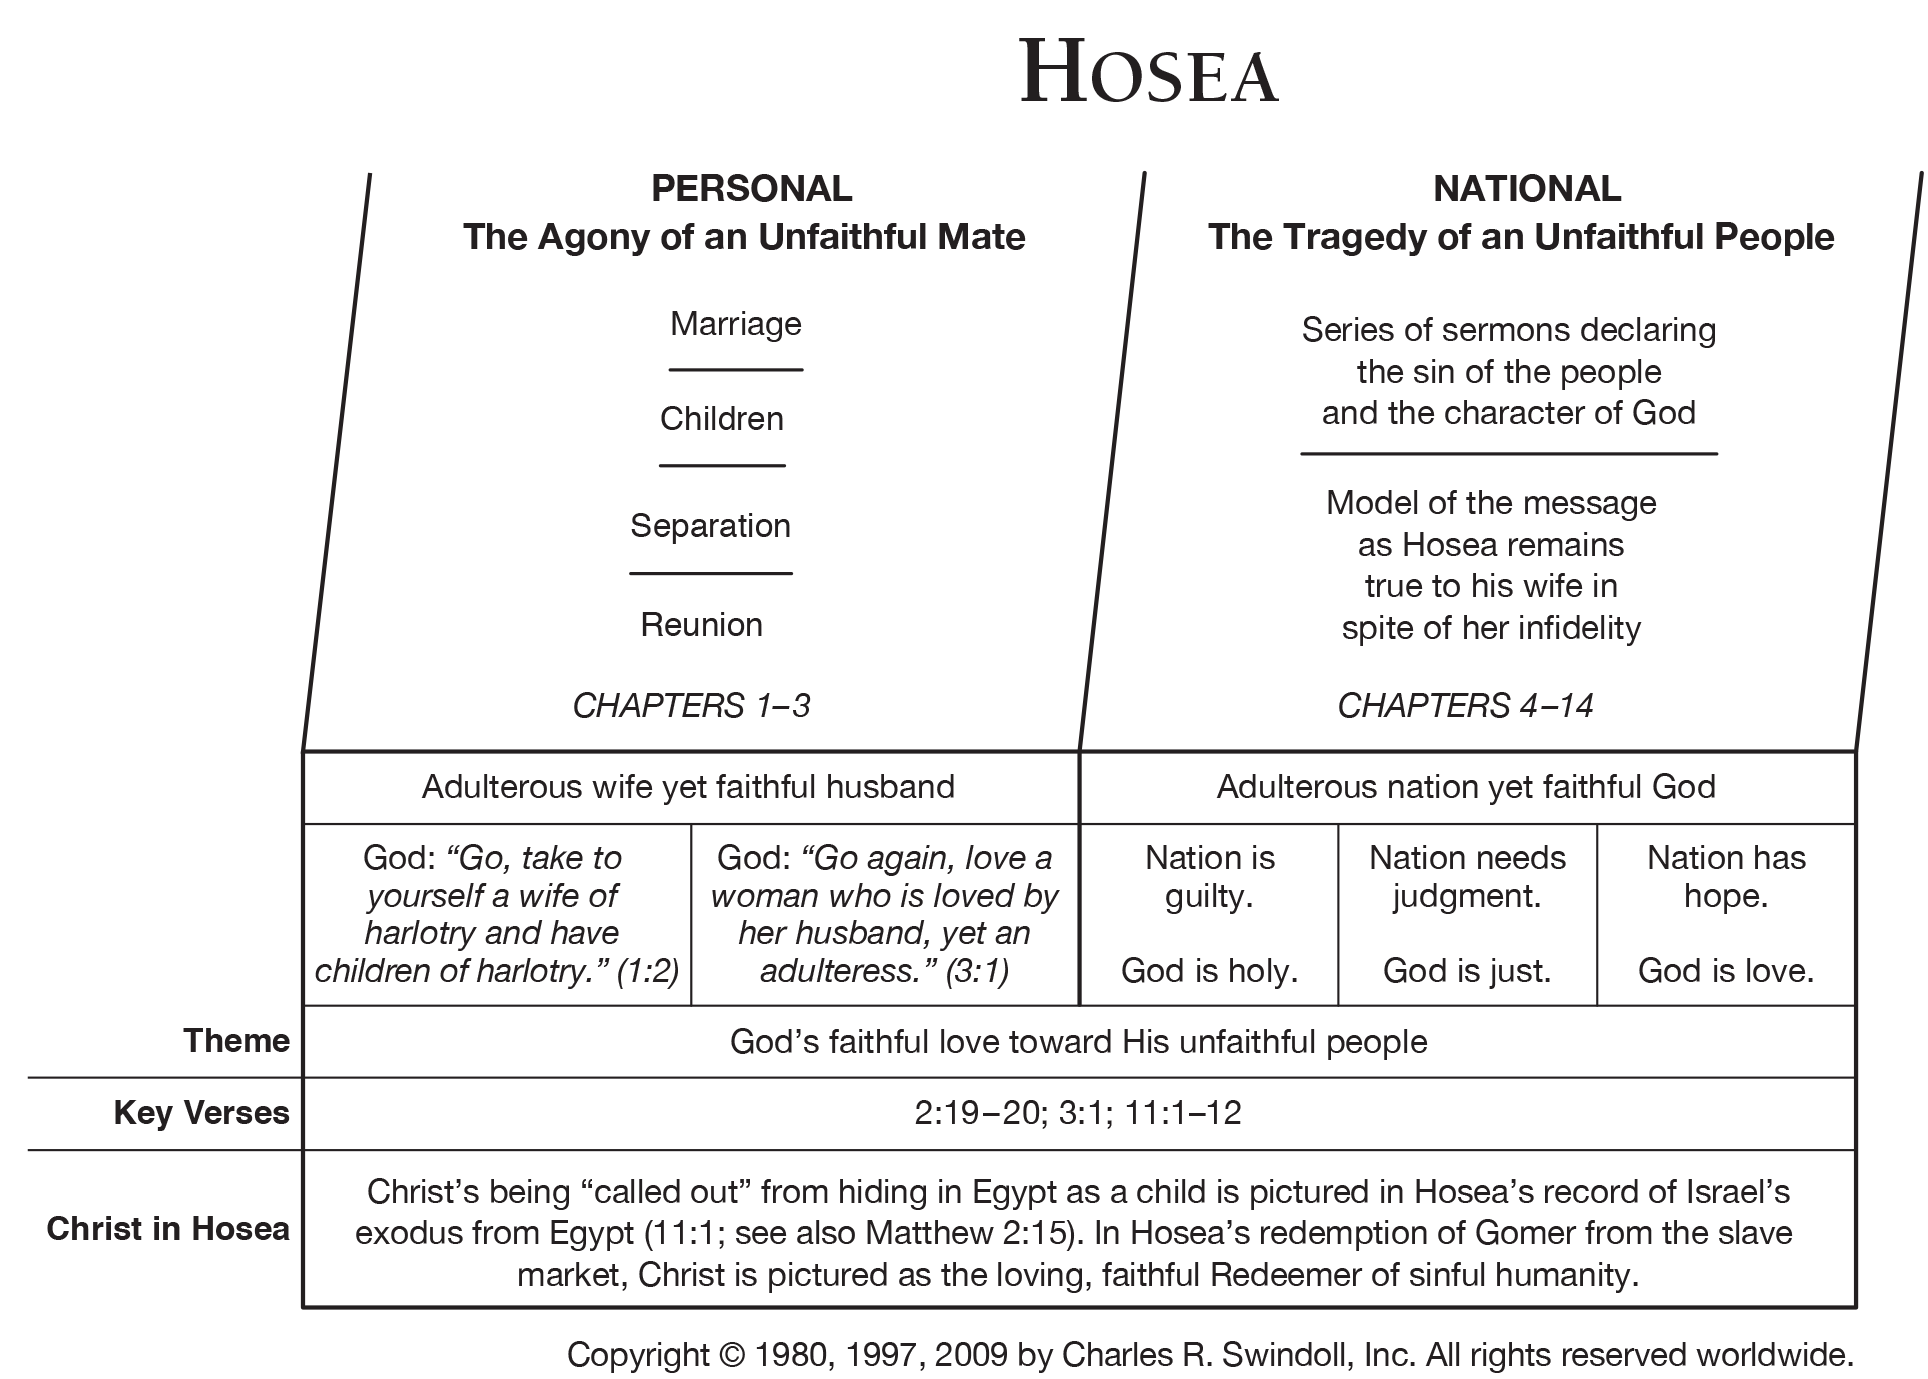 Book Of Hosea Overview